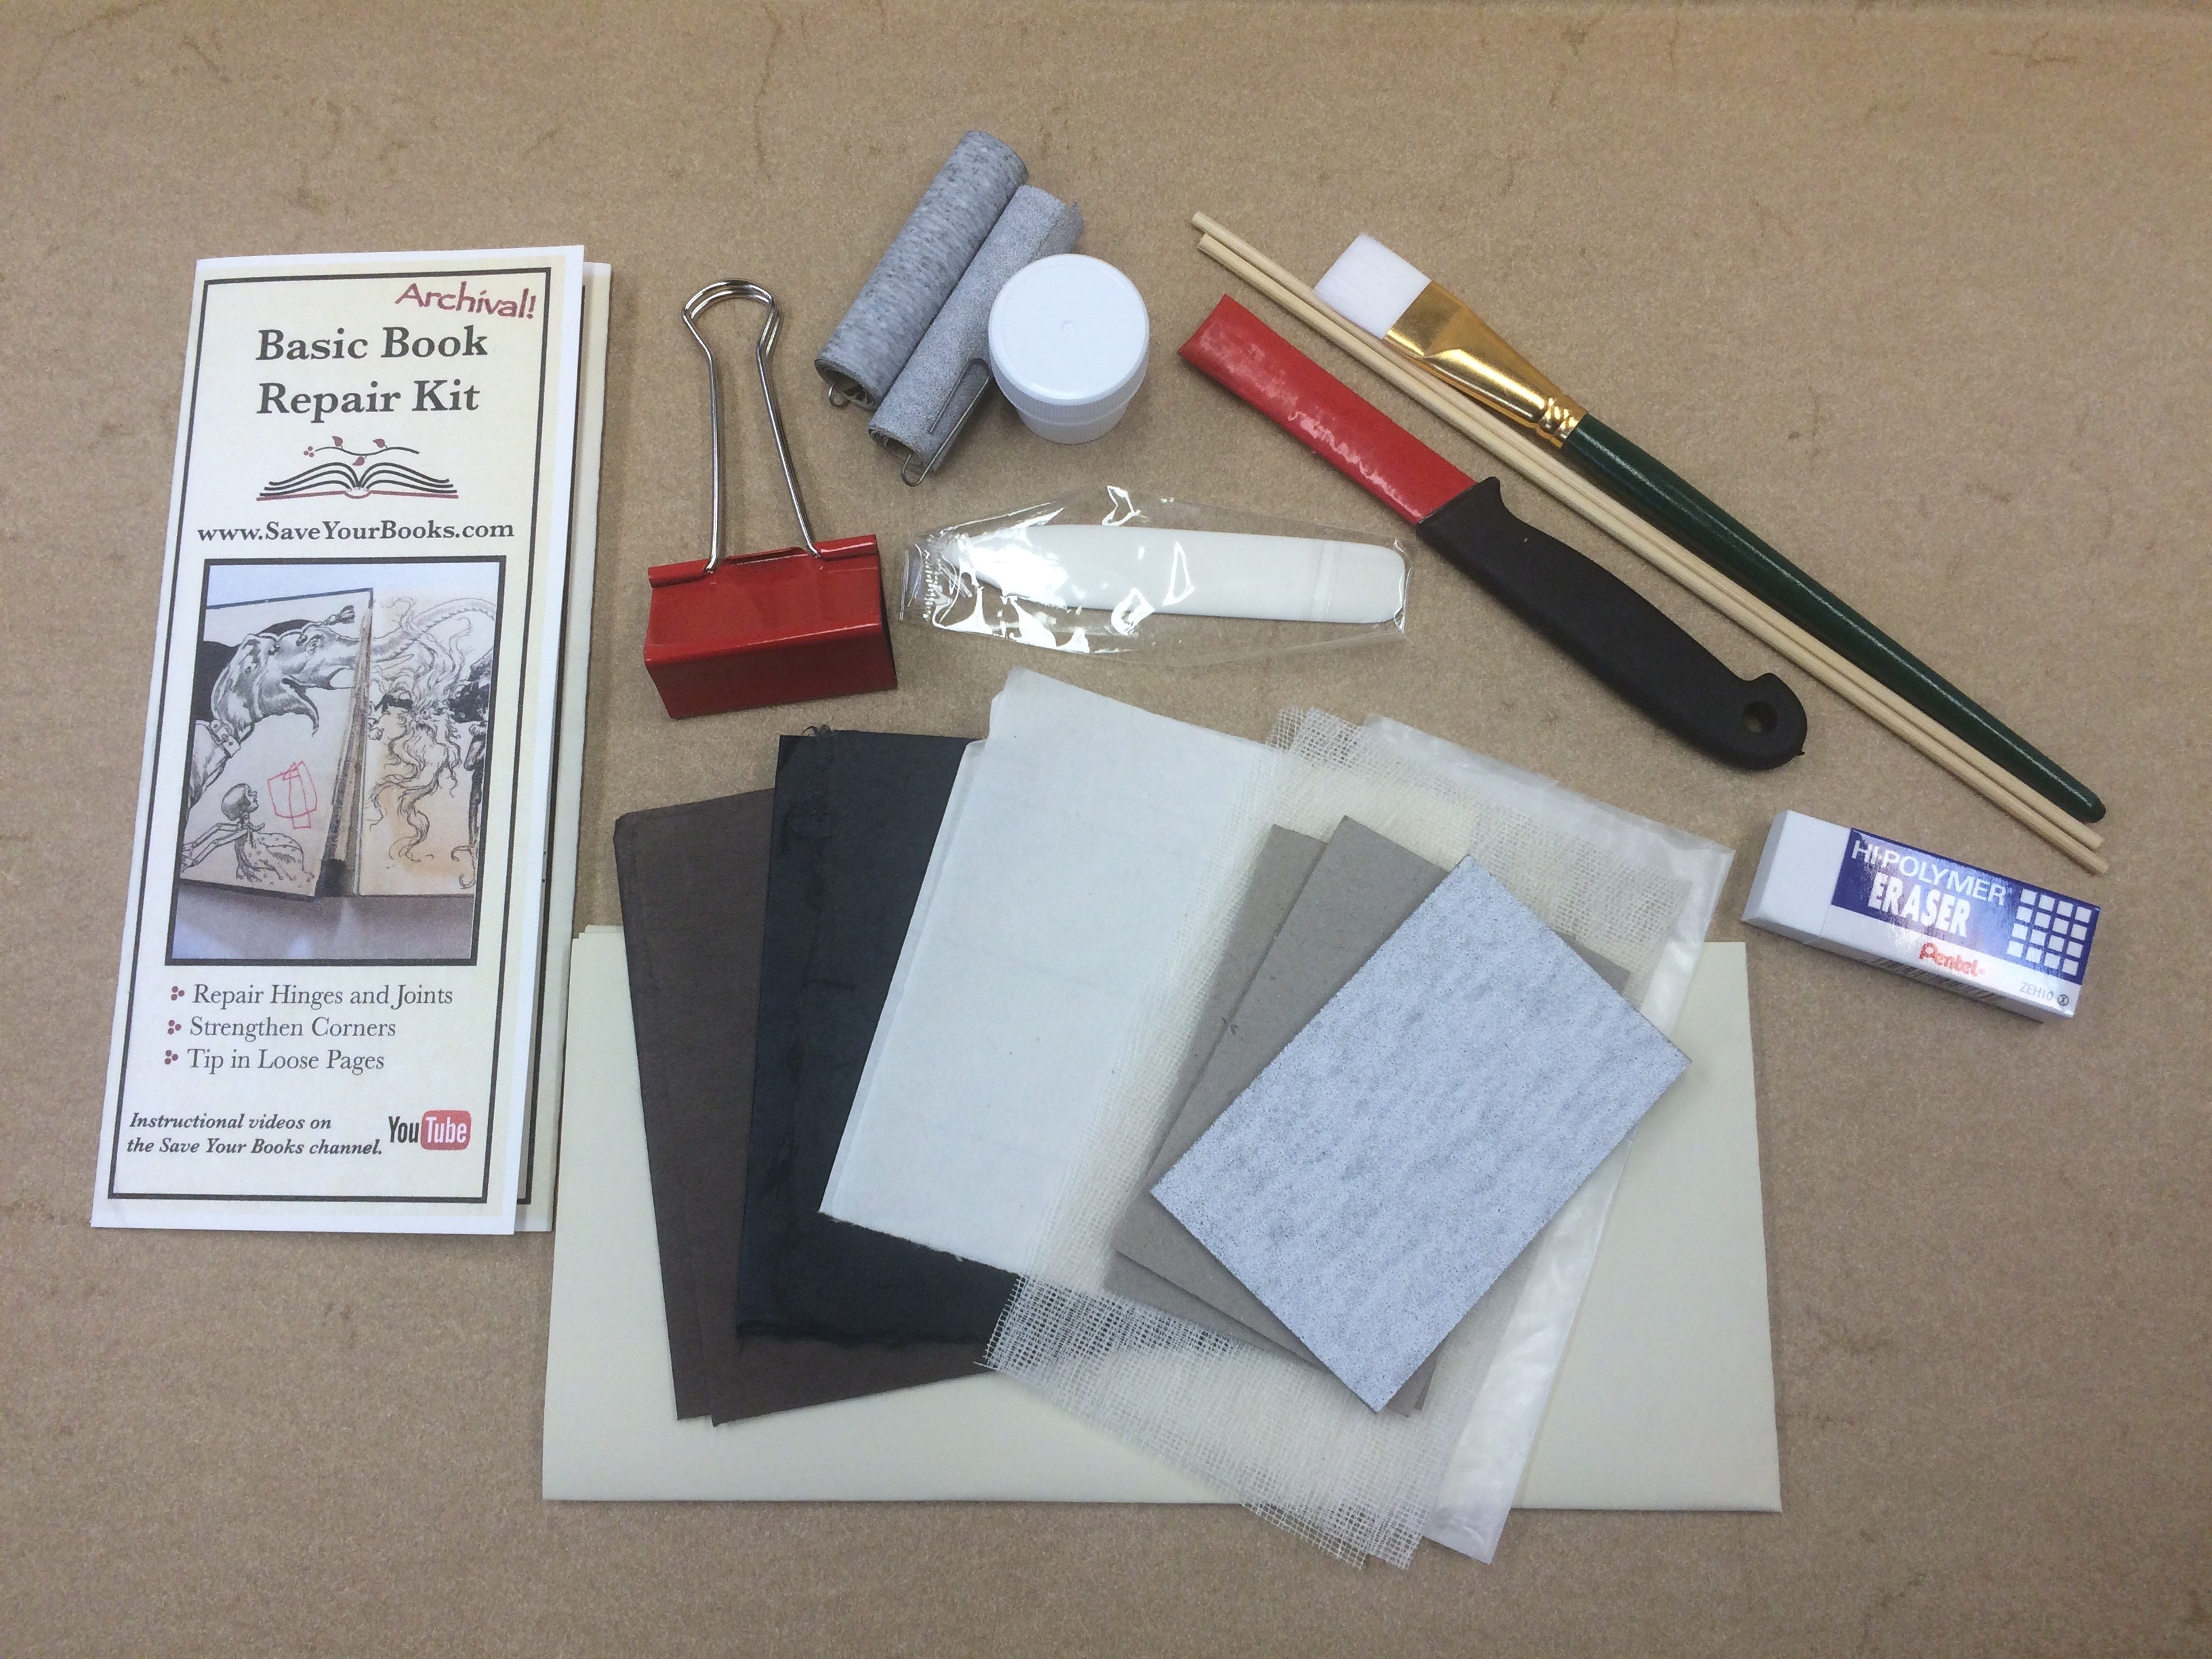 Book repair kit for repairing a book corner